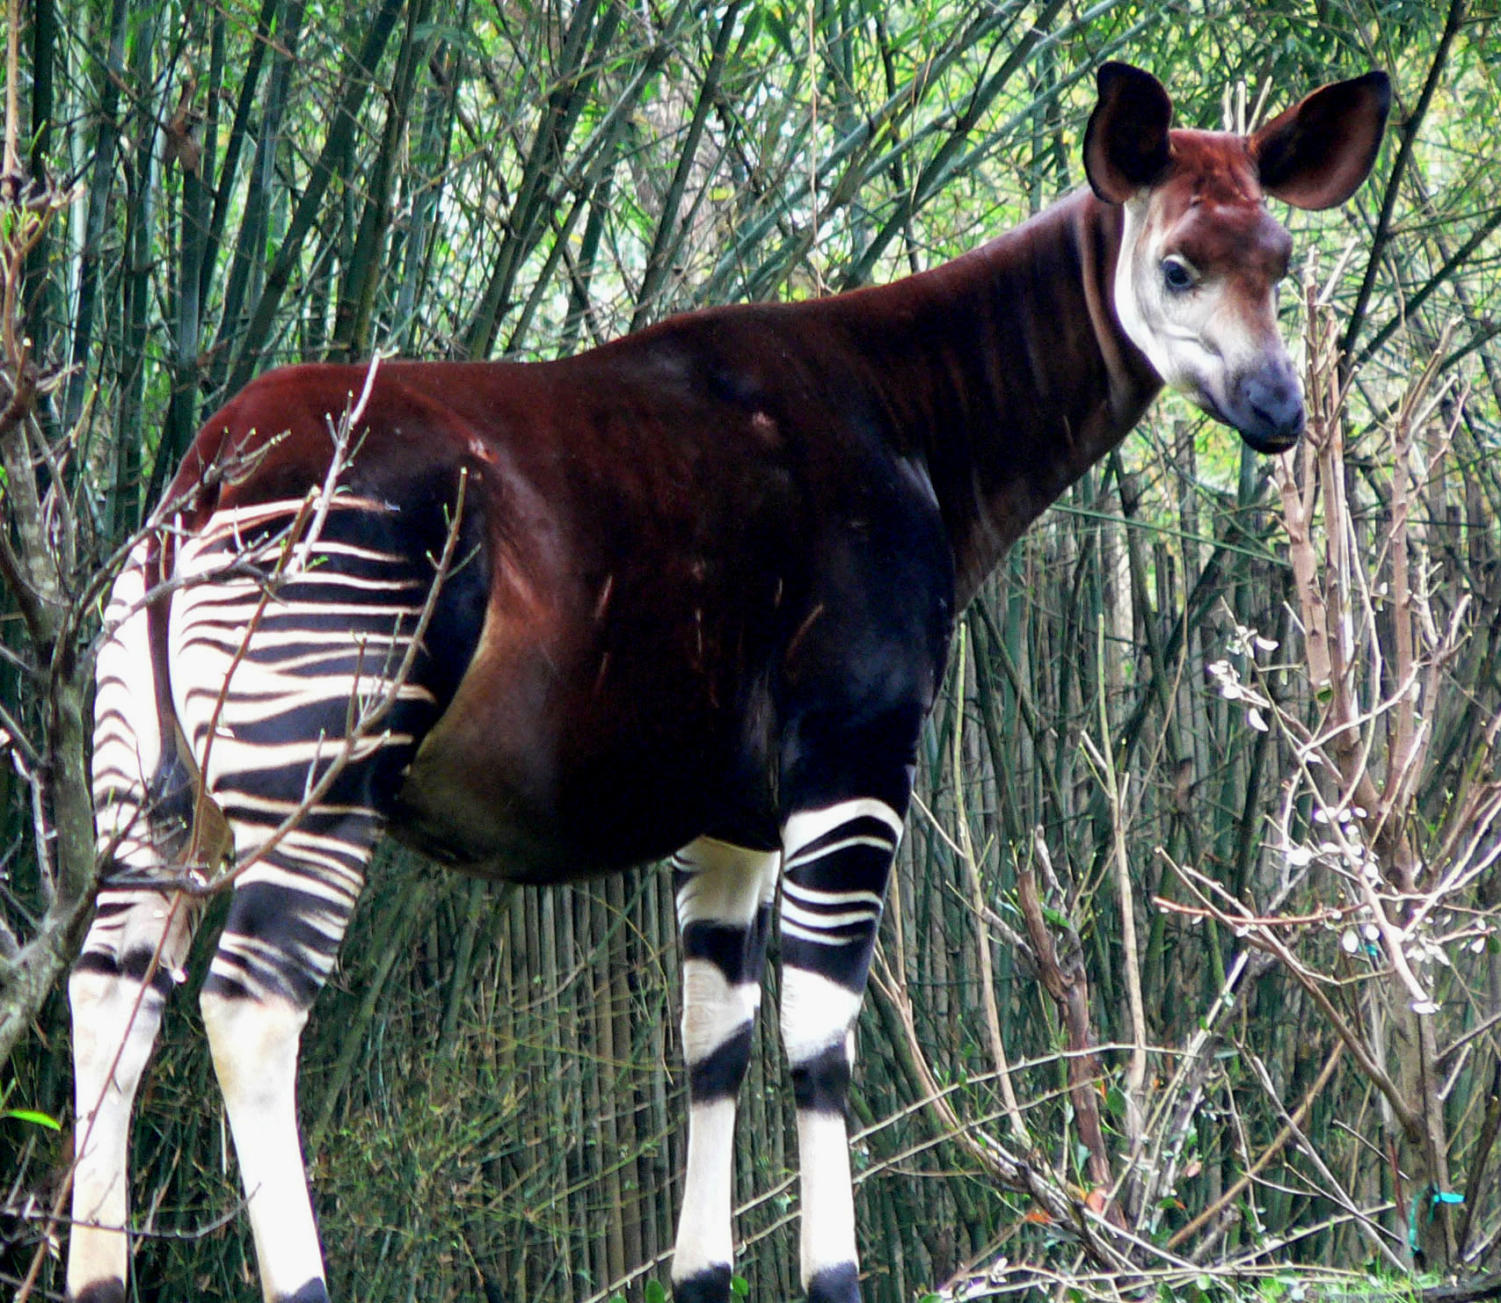 The+okapi+is+closely+related+to+the+giraffe.+Their+habitats+are+declining+from+logging+and+human+settlement.+The+Okapi+is+already+extinct+in+Uganda+and+conflicts+in+other+areas+they+live+make+it+had+for+conservation+efforts+to+be+effective.